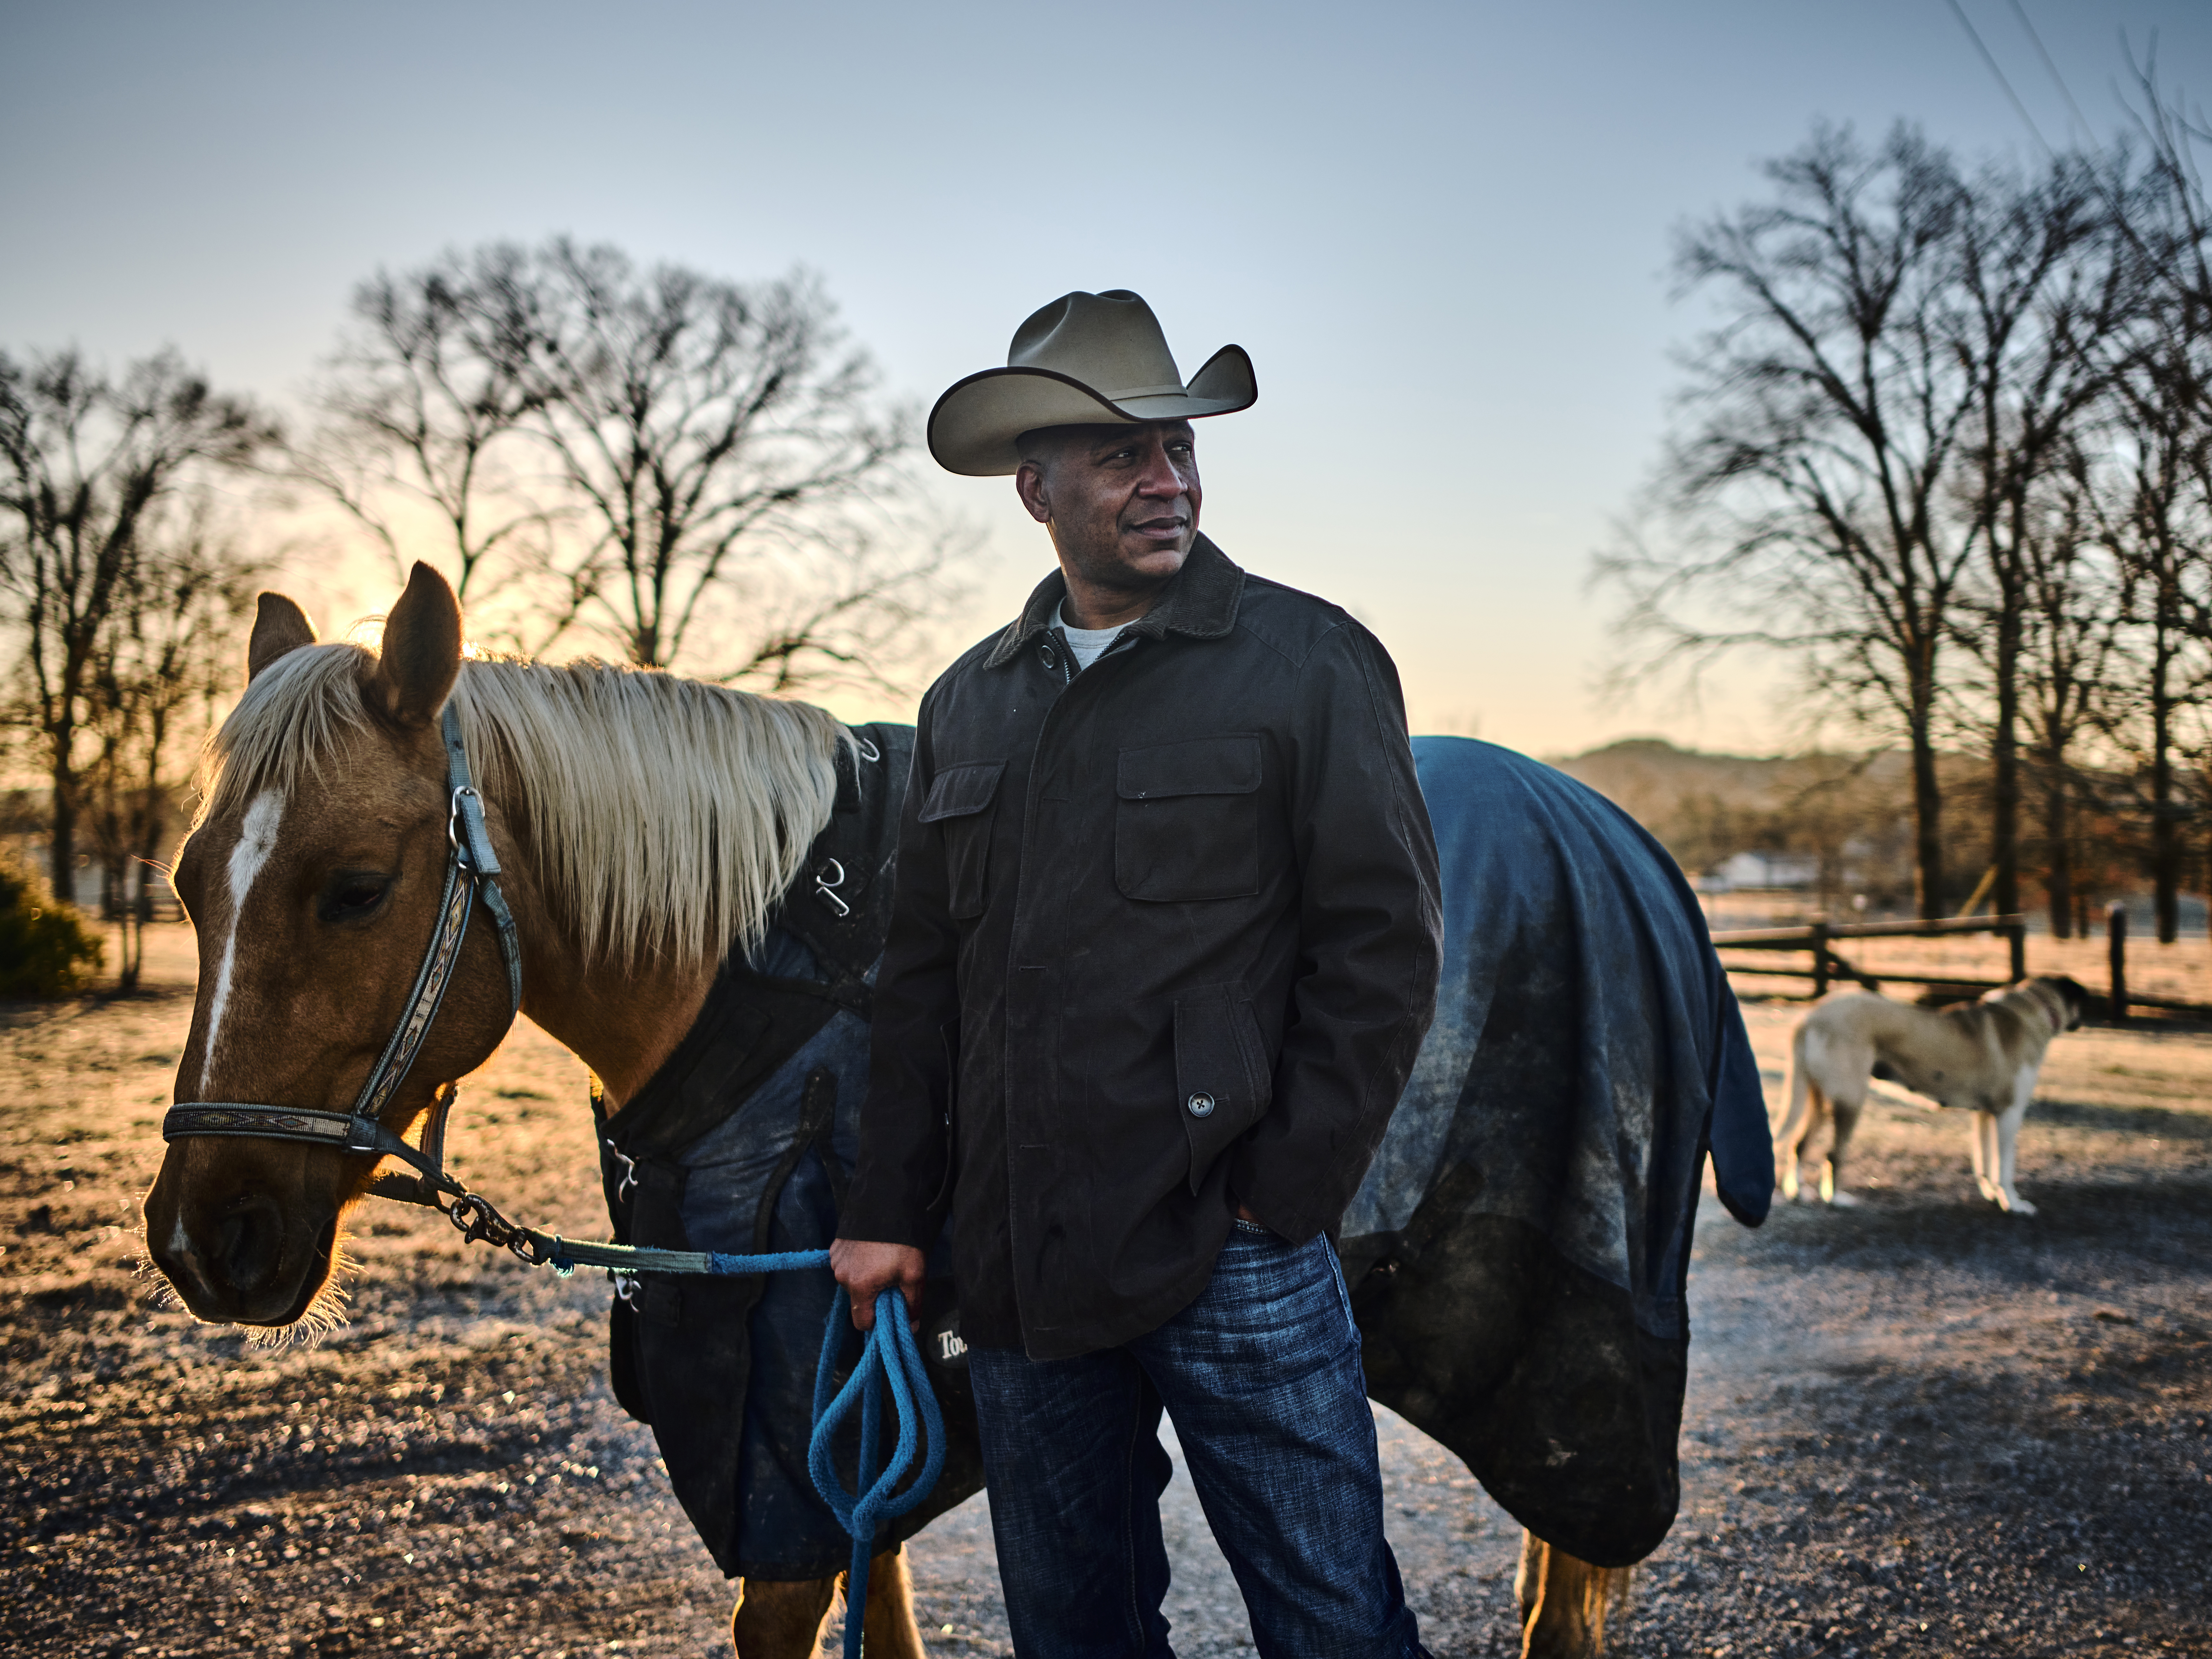 Corey Lea, a beef and pork rancher in Murfreesboro, Tenn., who advocates for Black farmers, doesn't like the idea of Tom Vilsack again leading the Agriculture Department. MUST CREDIT: photo for The Washington Post by William DeShazer.